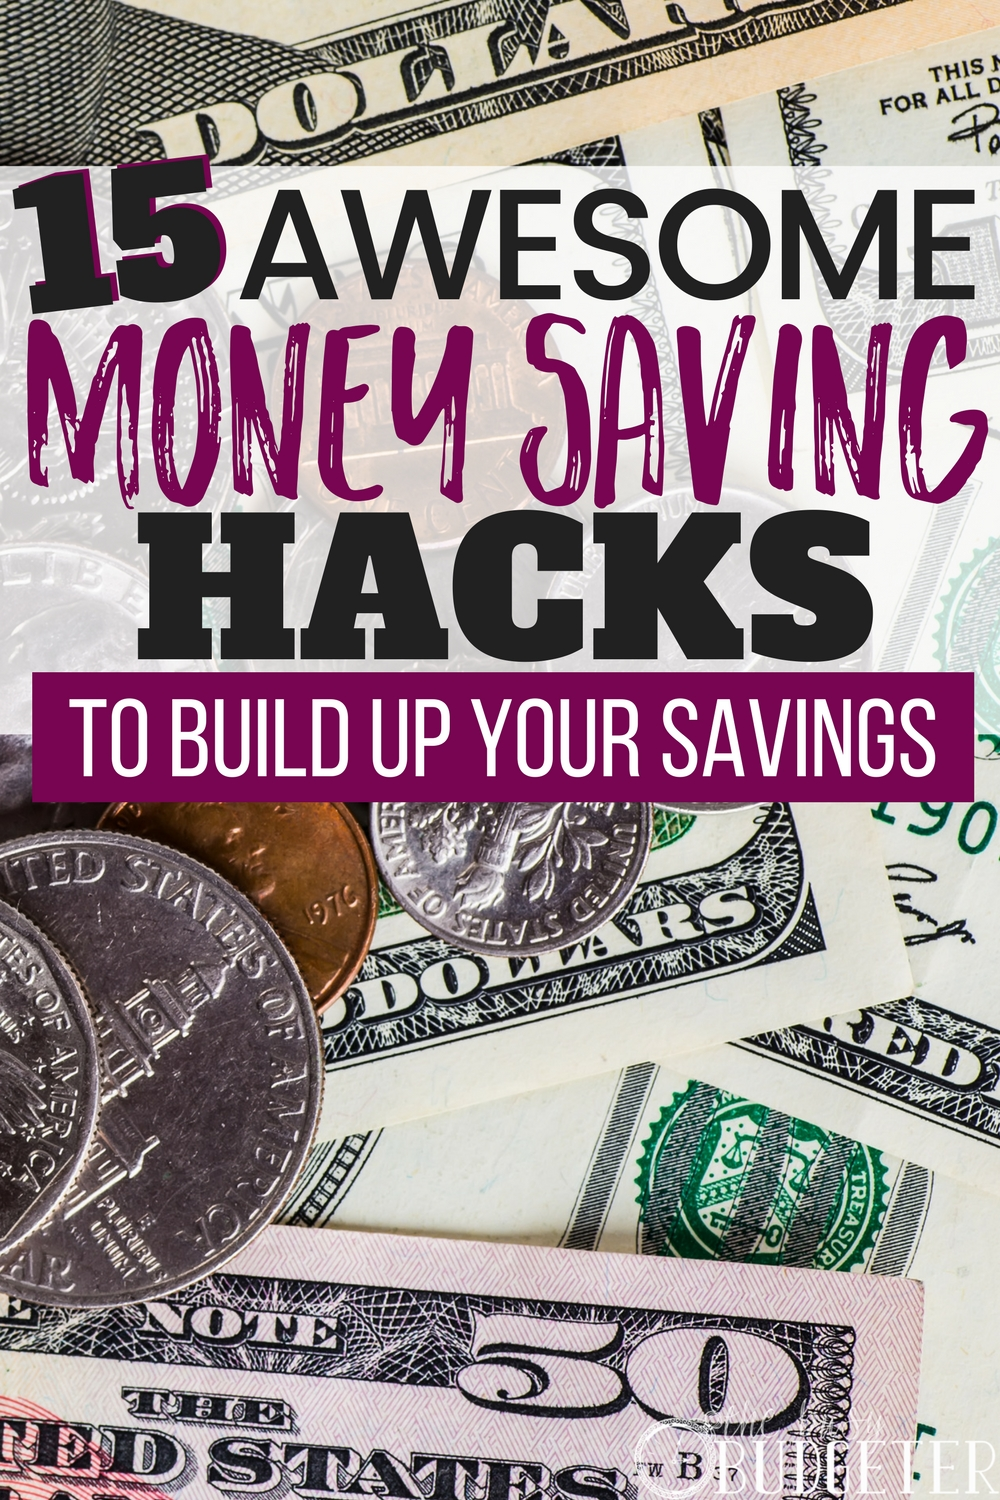 Not only did these tips help me build up my savings account quickly and easily but I was surprised to find out that it actually set me up for saving money every single month!! If that's not a budgeting win-win then I don't know what is!